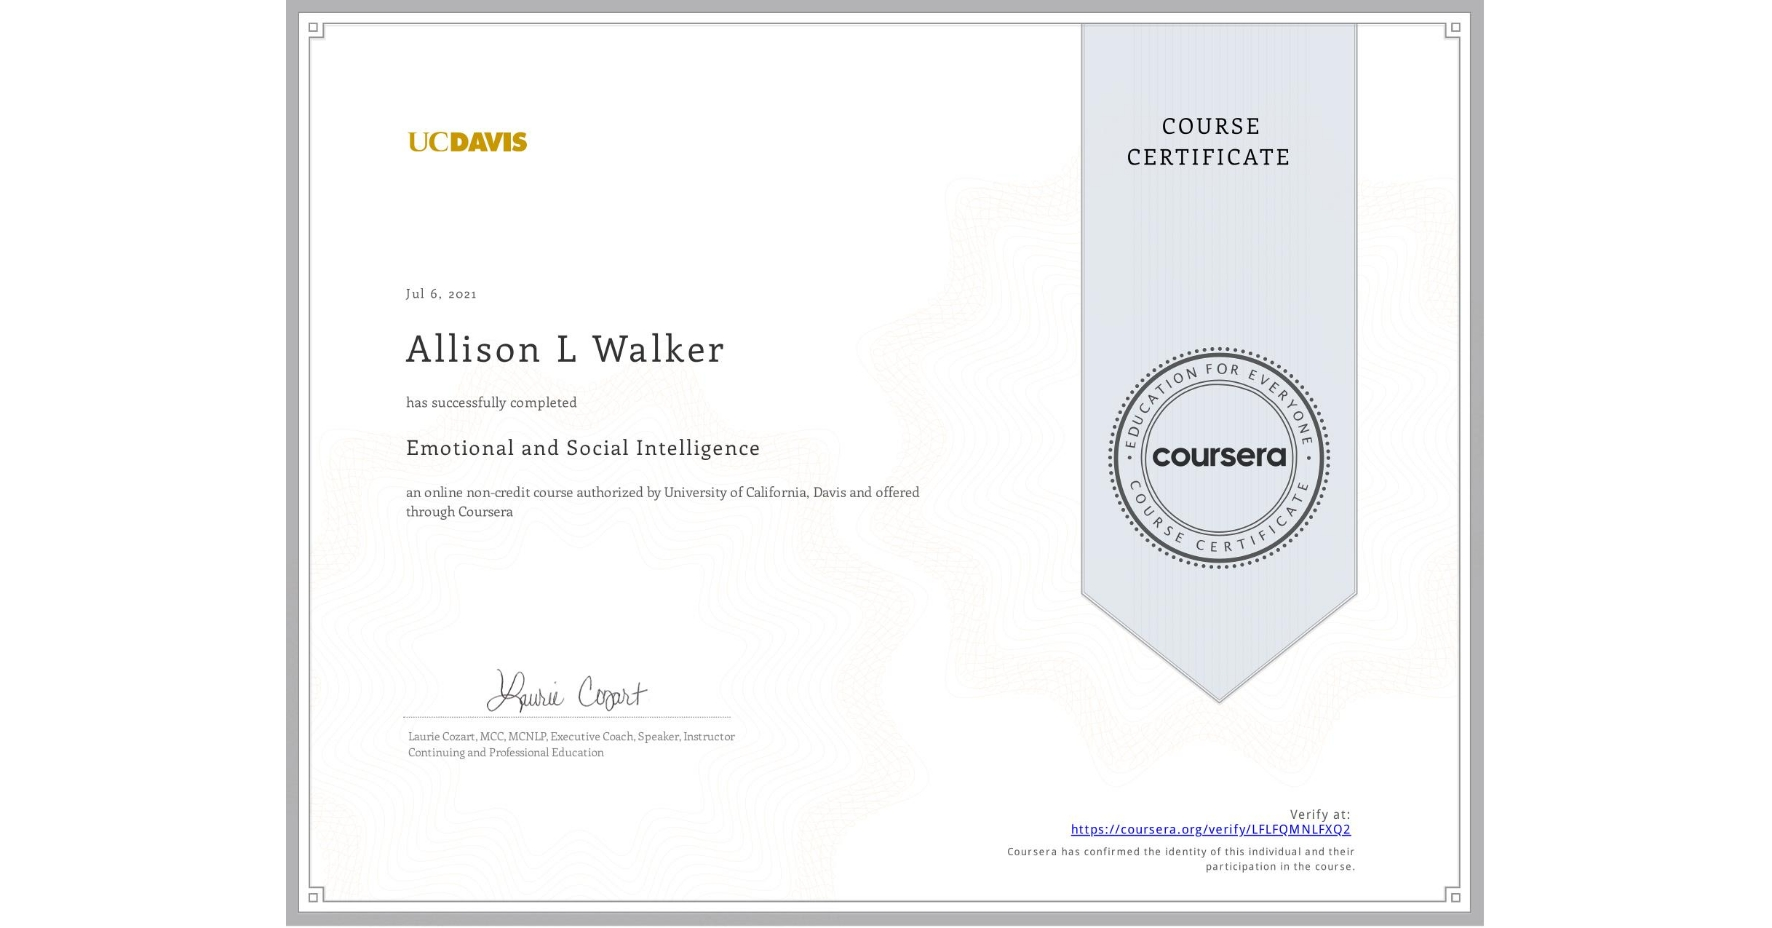 View certificate for Allison L Walker, Emotional and Social Intelligence, an online non-credit course authorized by University of California, Davis and offered through Coursera